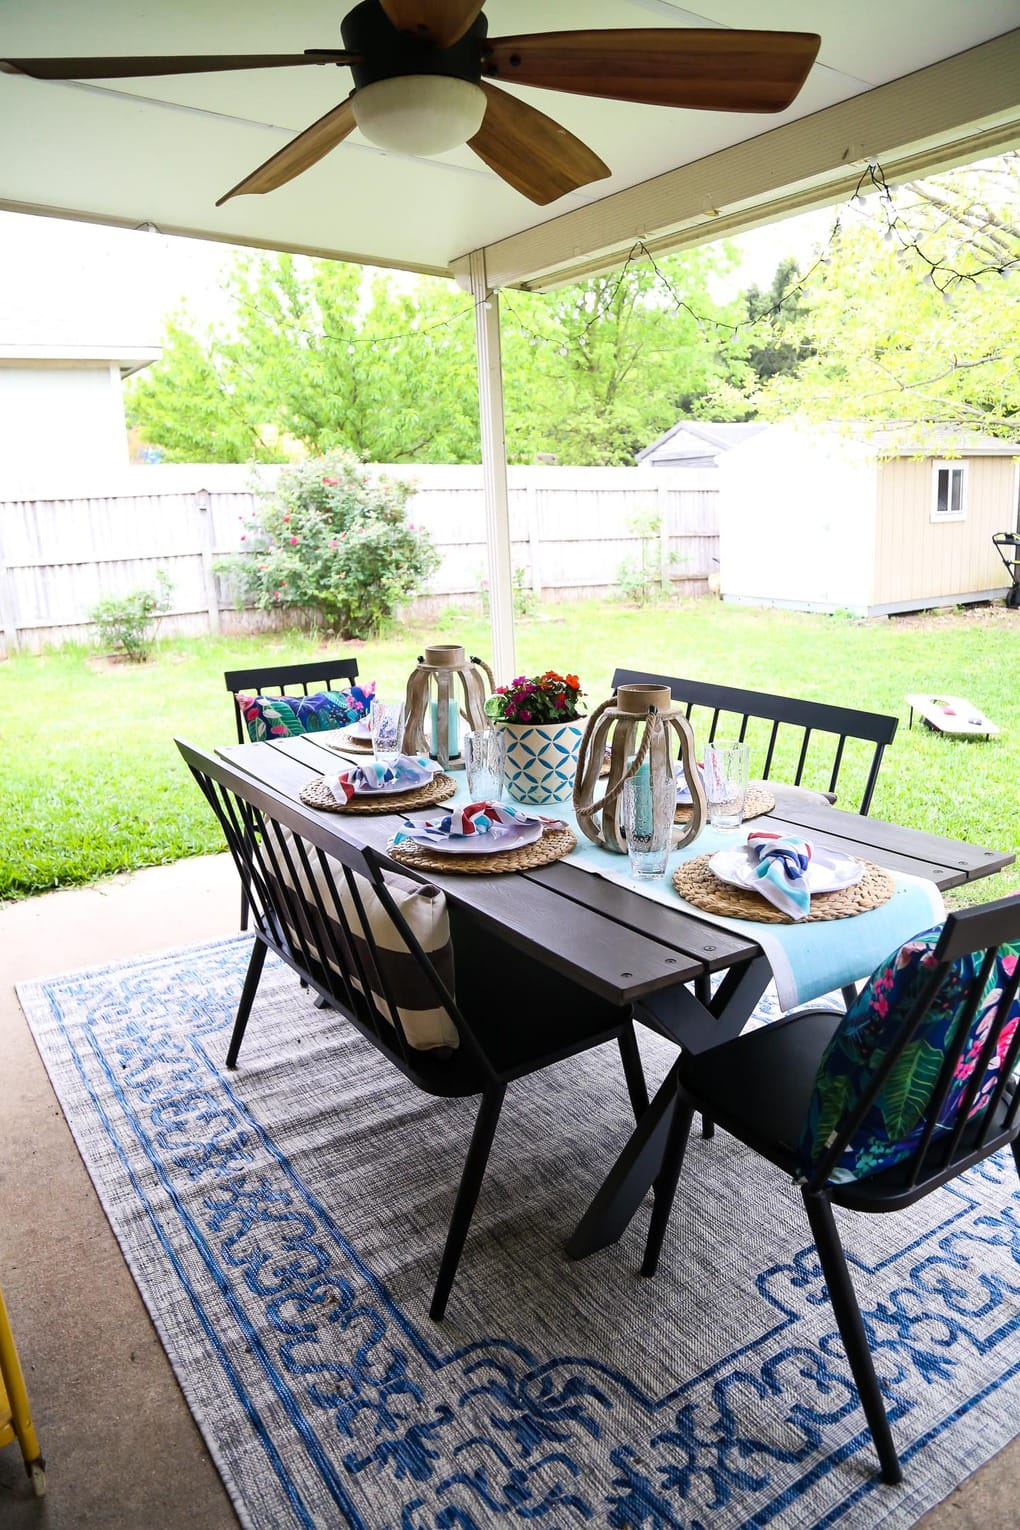 Back patio with a table, two benches, and two chairs